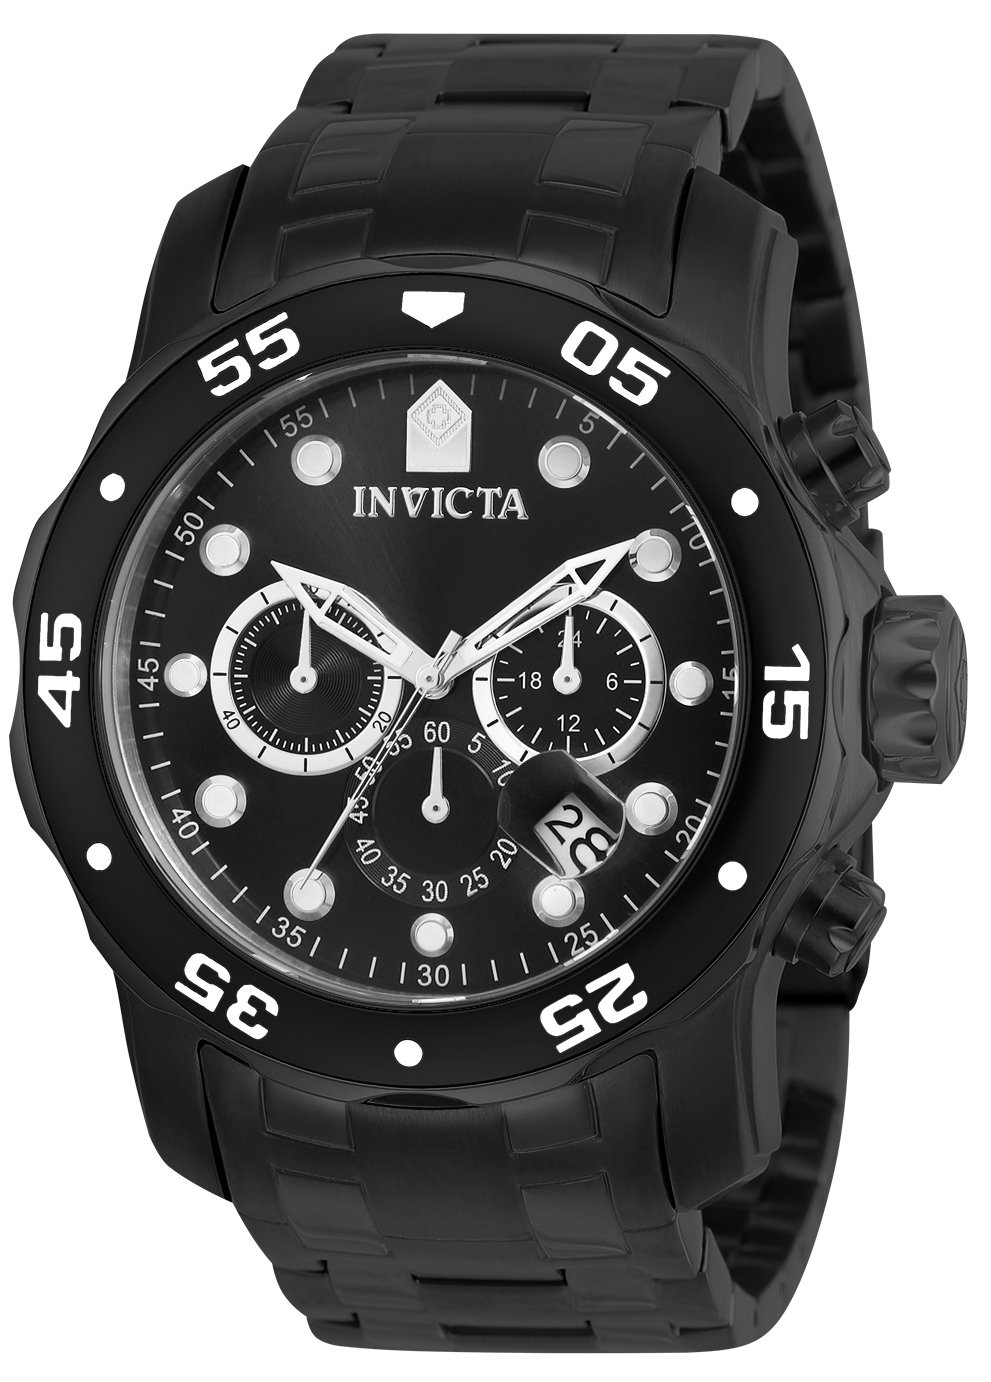 Invicta Men's 0076 Pro Diver Collection Chronograph Black Ion-Plated Stainless Steel Watch by Invicta